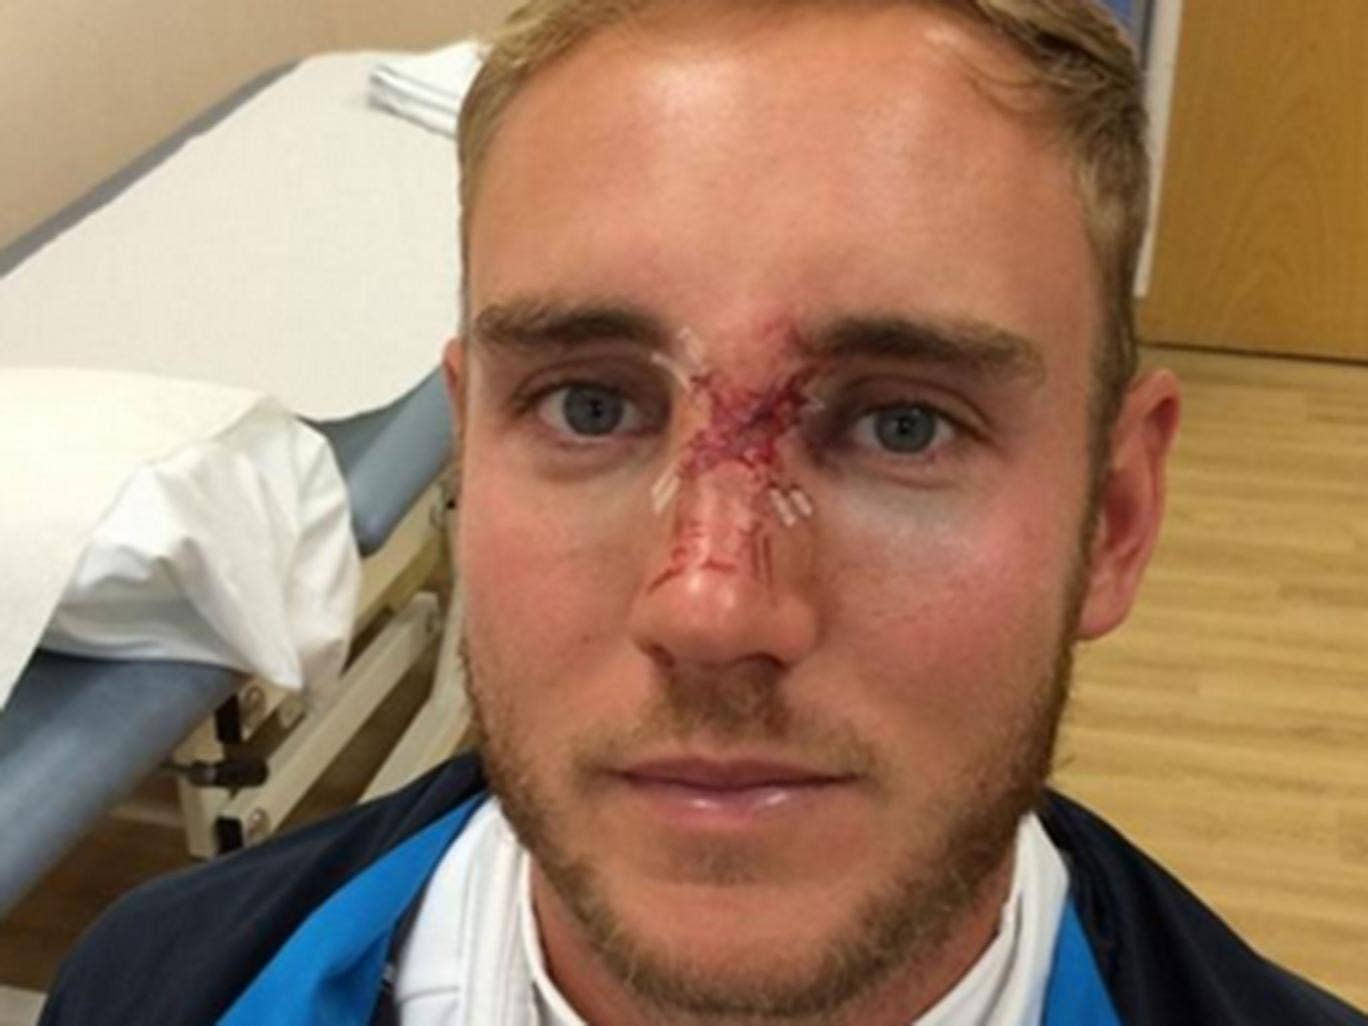 Stuart Broad shows his fractured nose